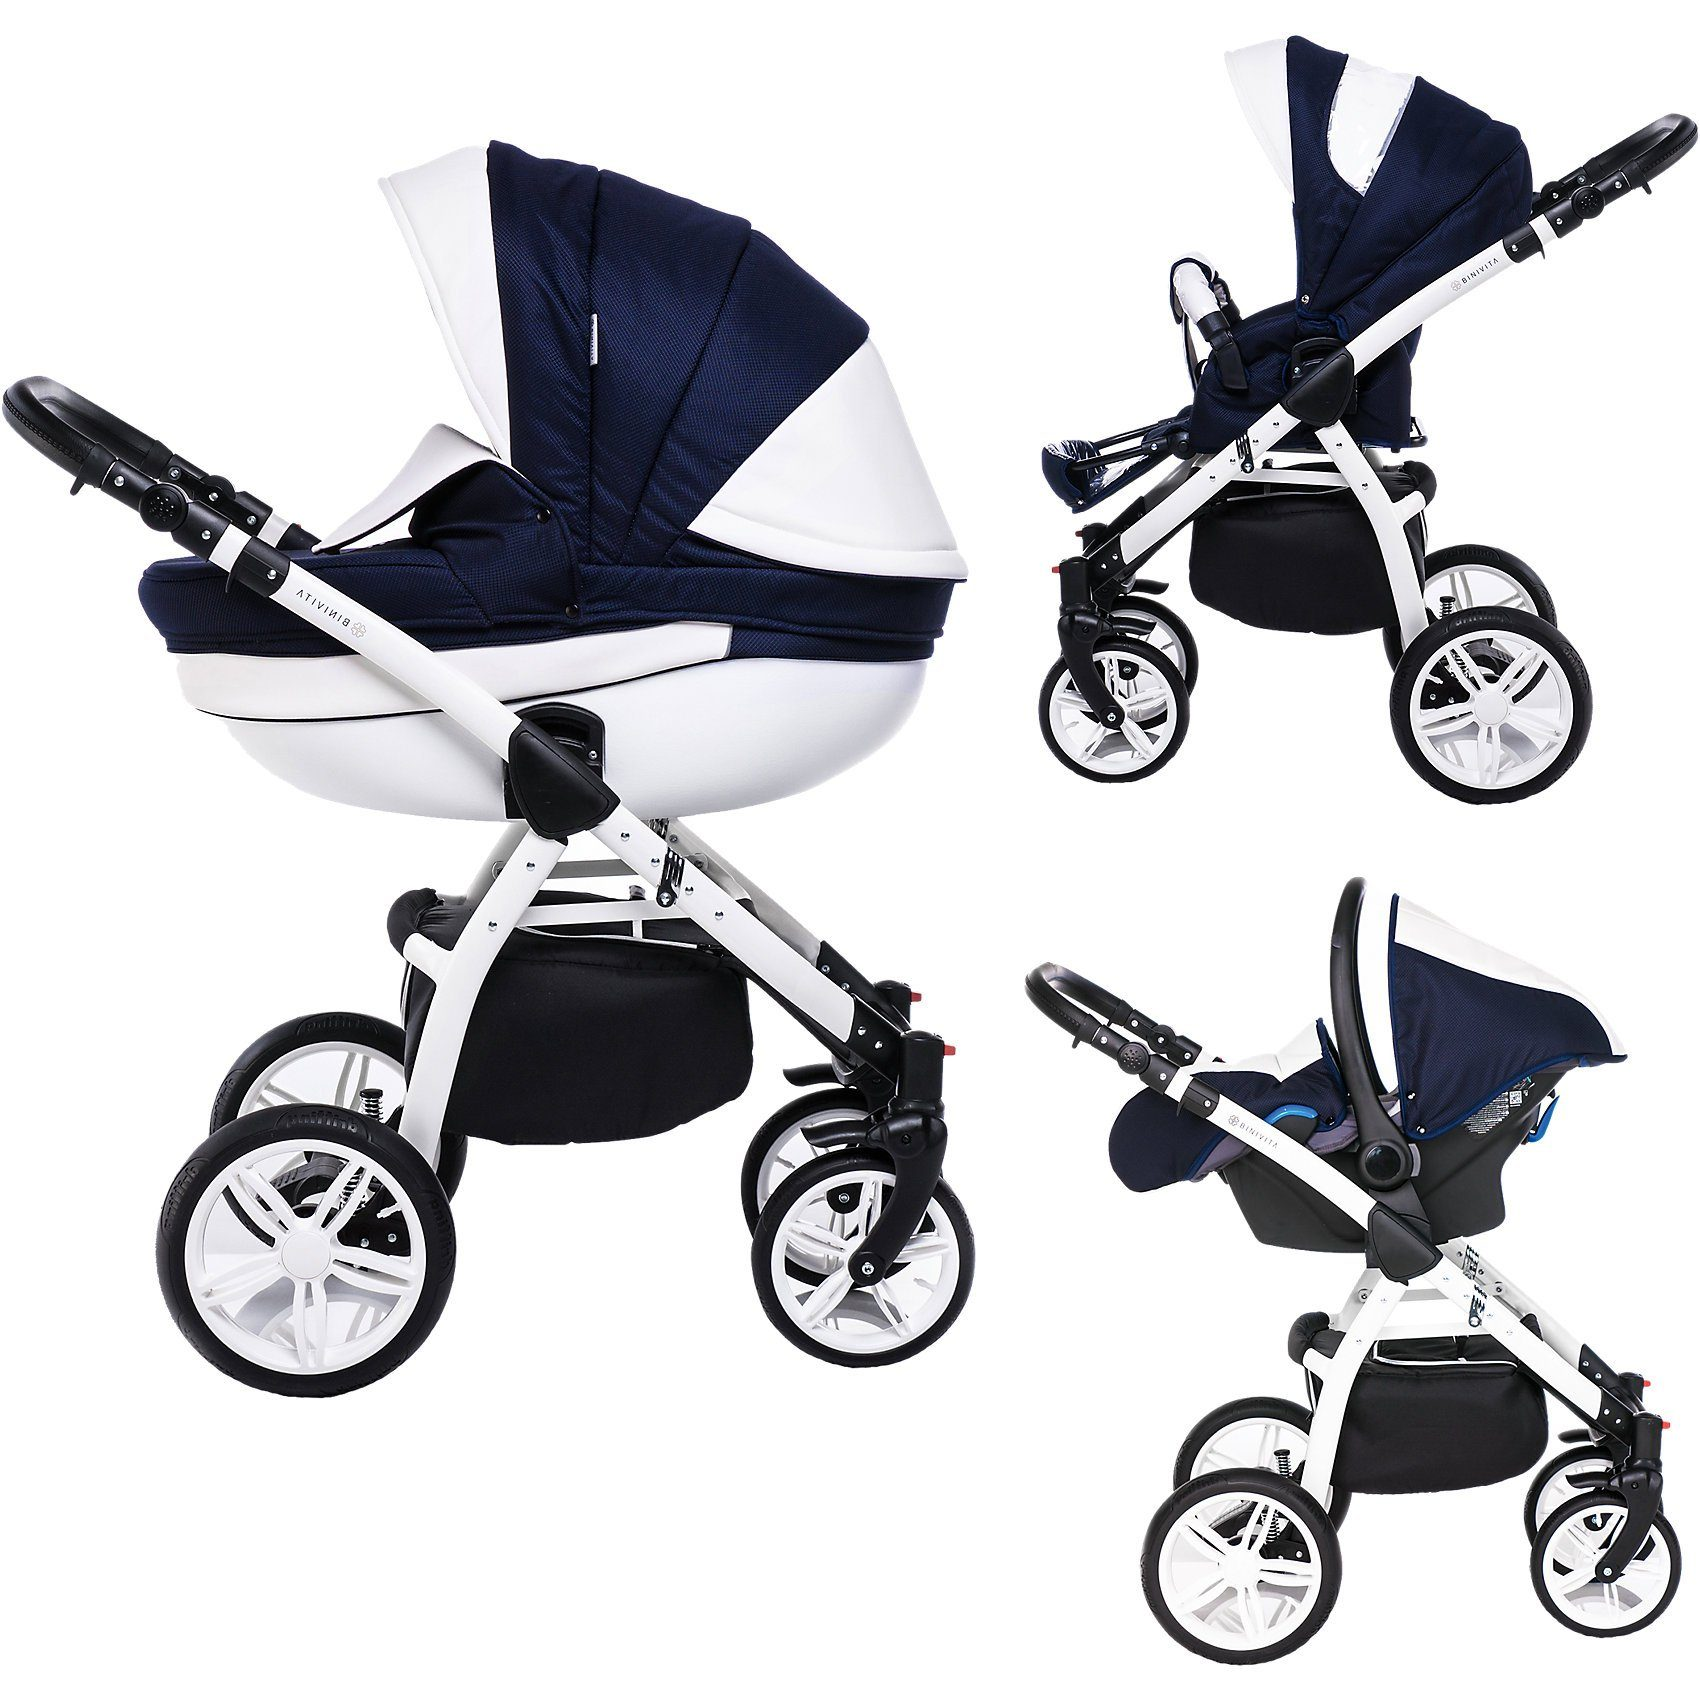 Kombi Kinderwagen Auf Rechnung Binivita Kombi Kinderwagen Isabel 3 In 1 White Collection Blue Online Kaufen Otto